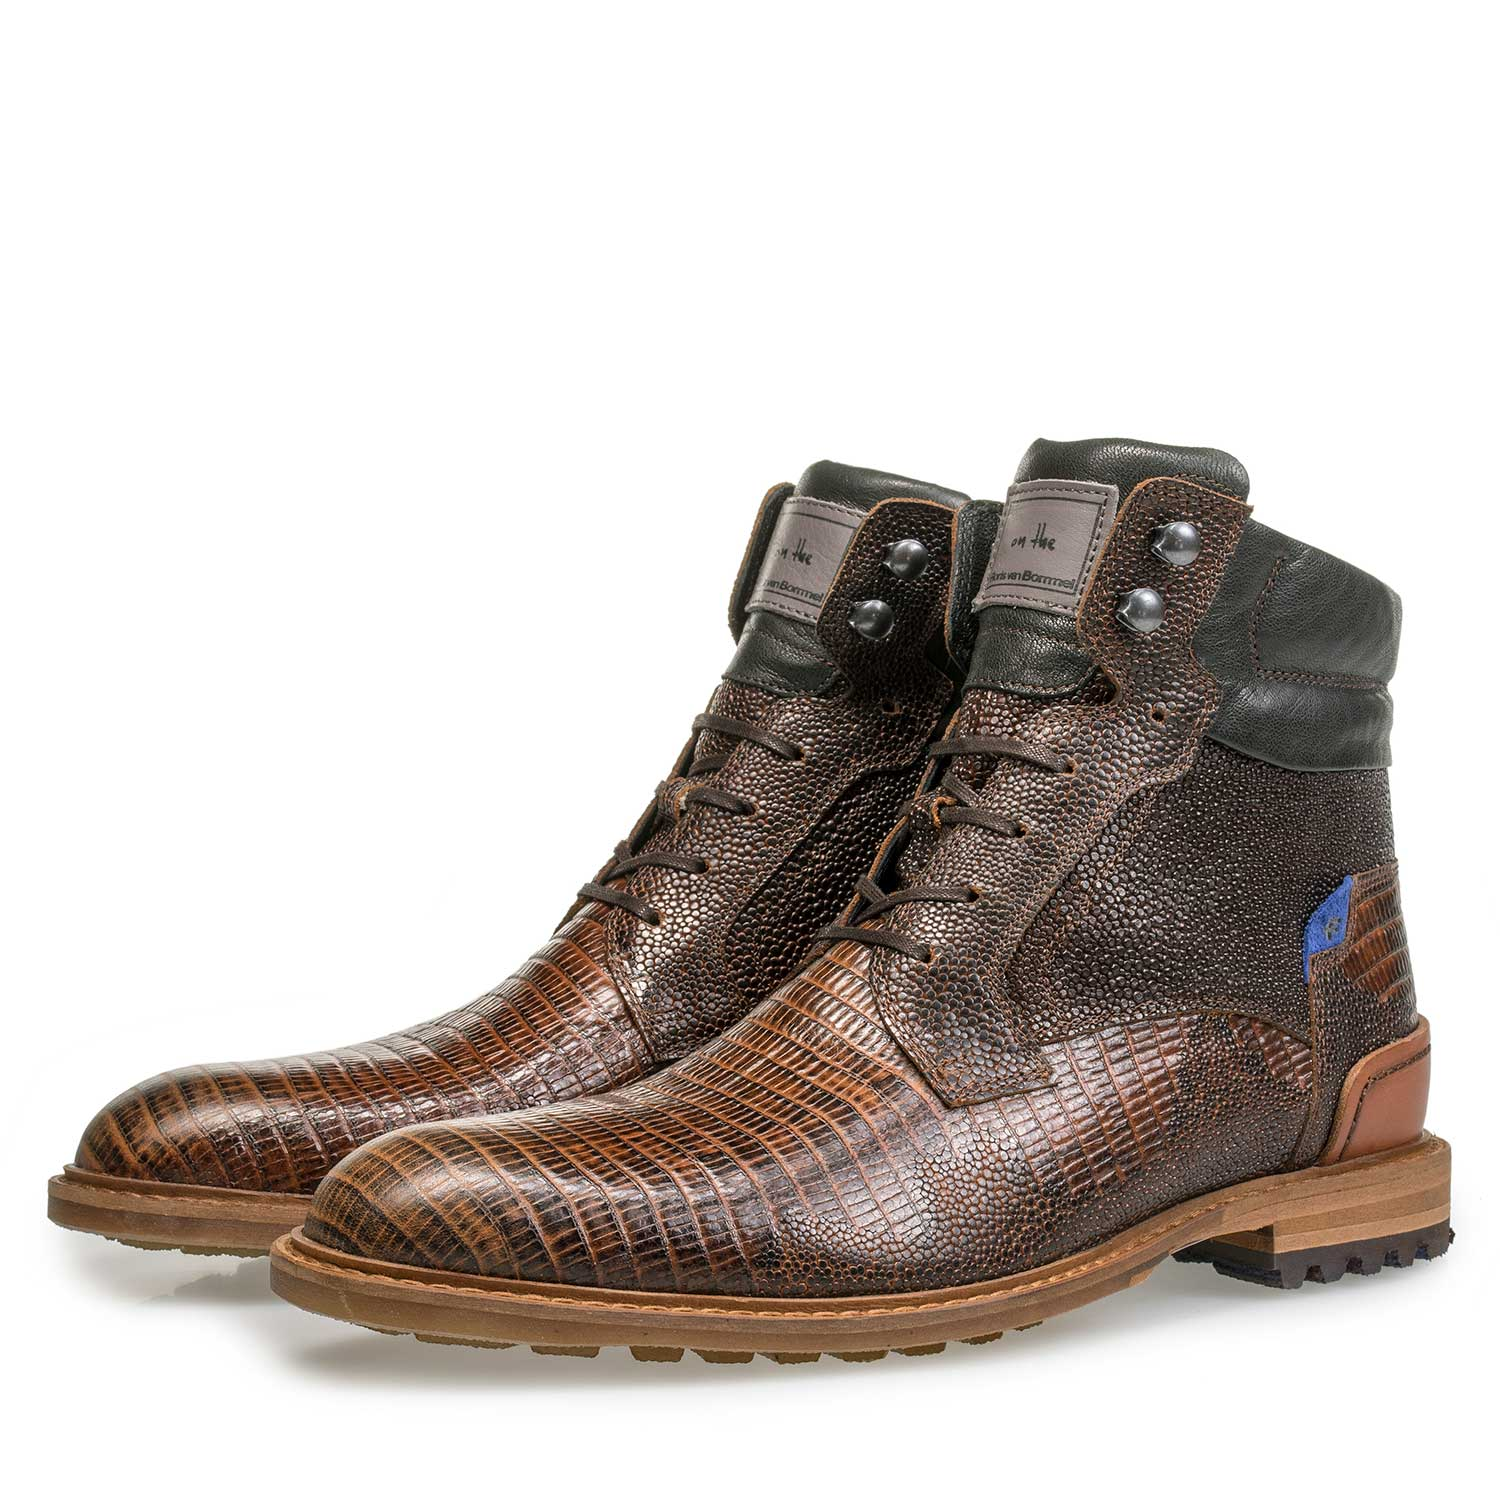 10234/00 - Cognac-coloured leather lace boot with lizard print